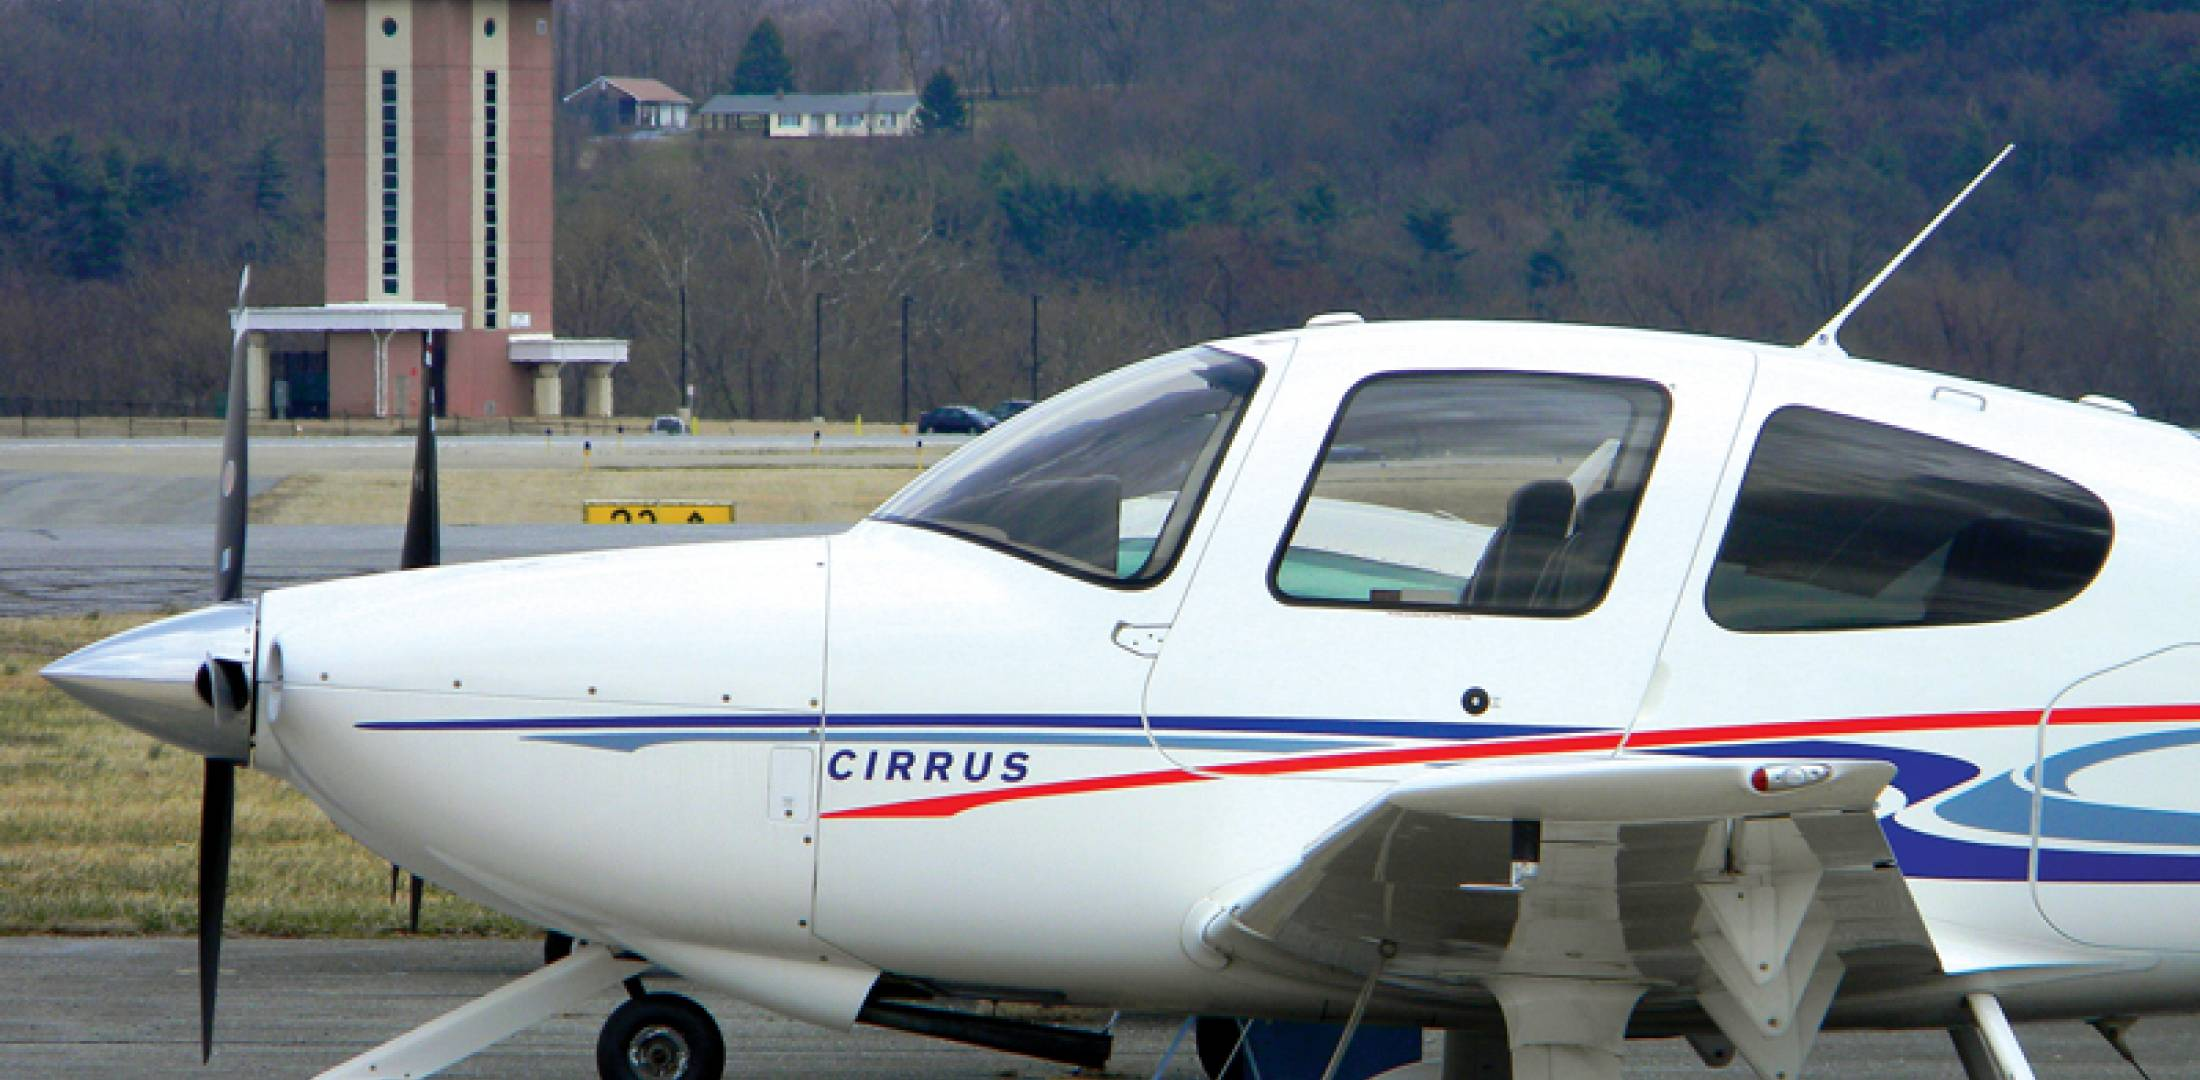 The tower at Frederick Municipal Airport in western Maryland is one of the contract towers on the FAA's closure list. It was built with $5.3 million in federal stimulus money and occasionally handles Marine Corps presidential helicopters if the weather at nearby Camp David is bad. (Photo: Bill Carey)